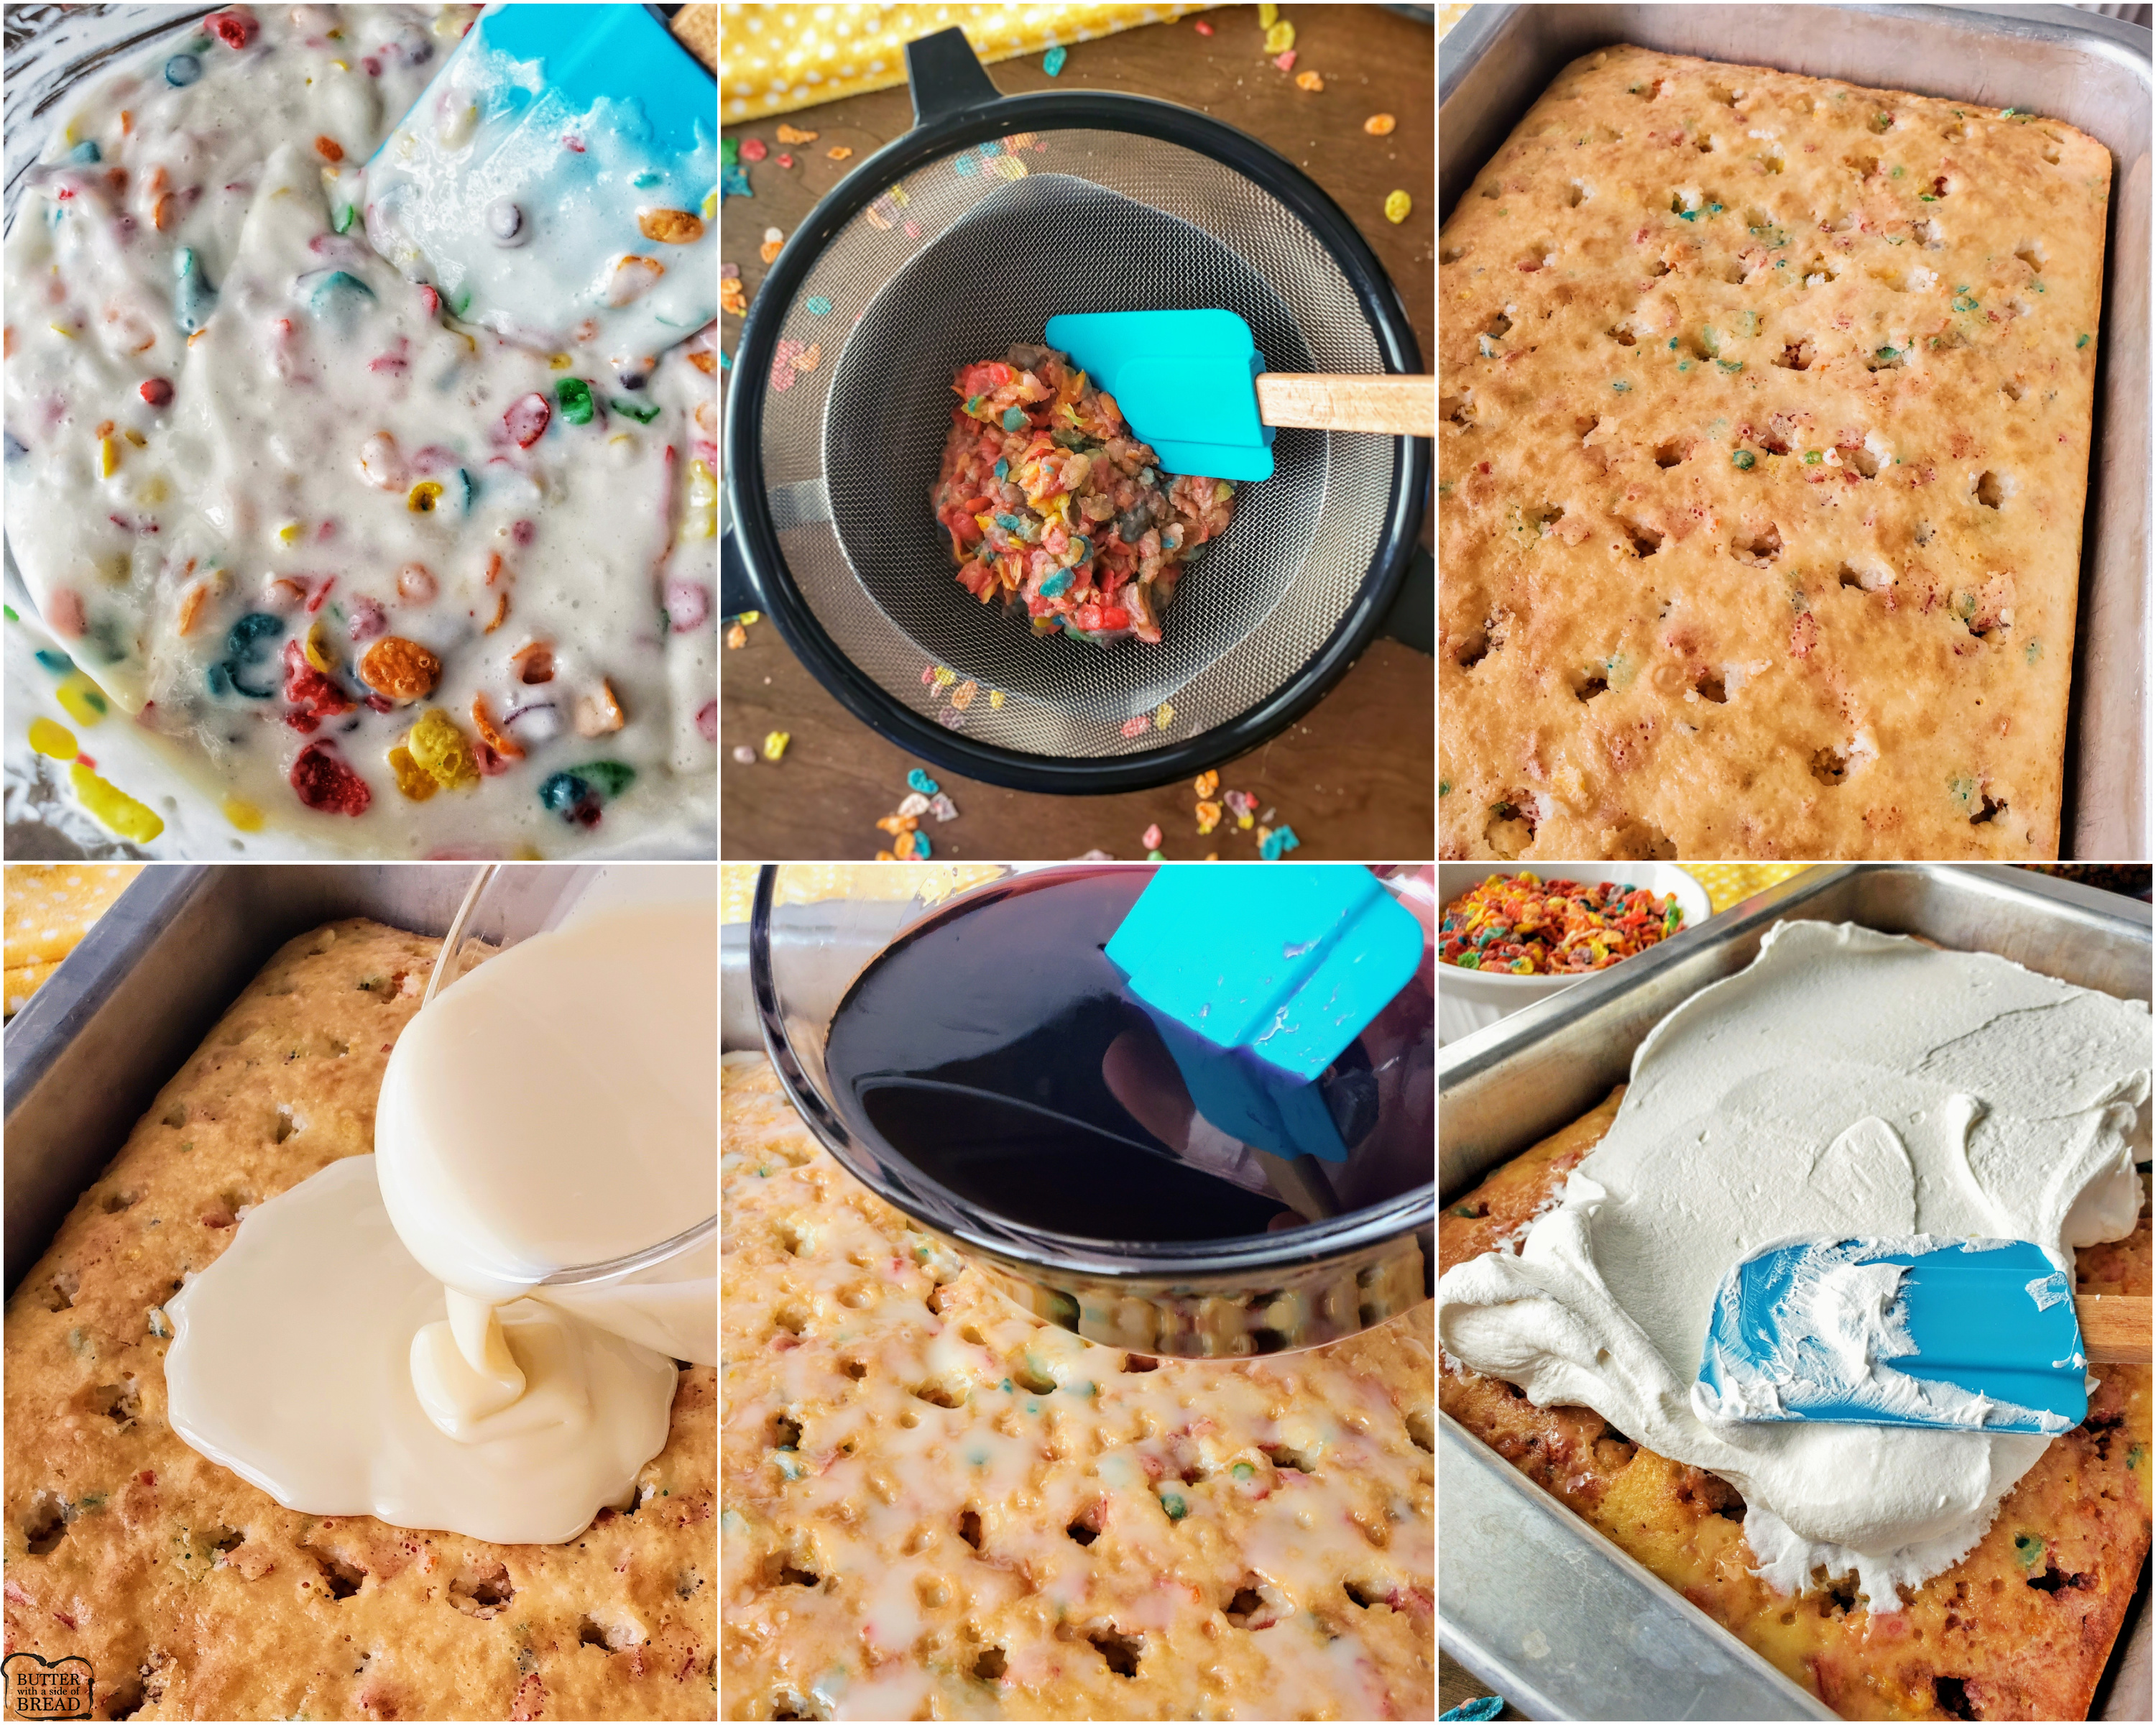 how to make a Poke cake recipe with Fruity Pebbles cereal